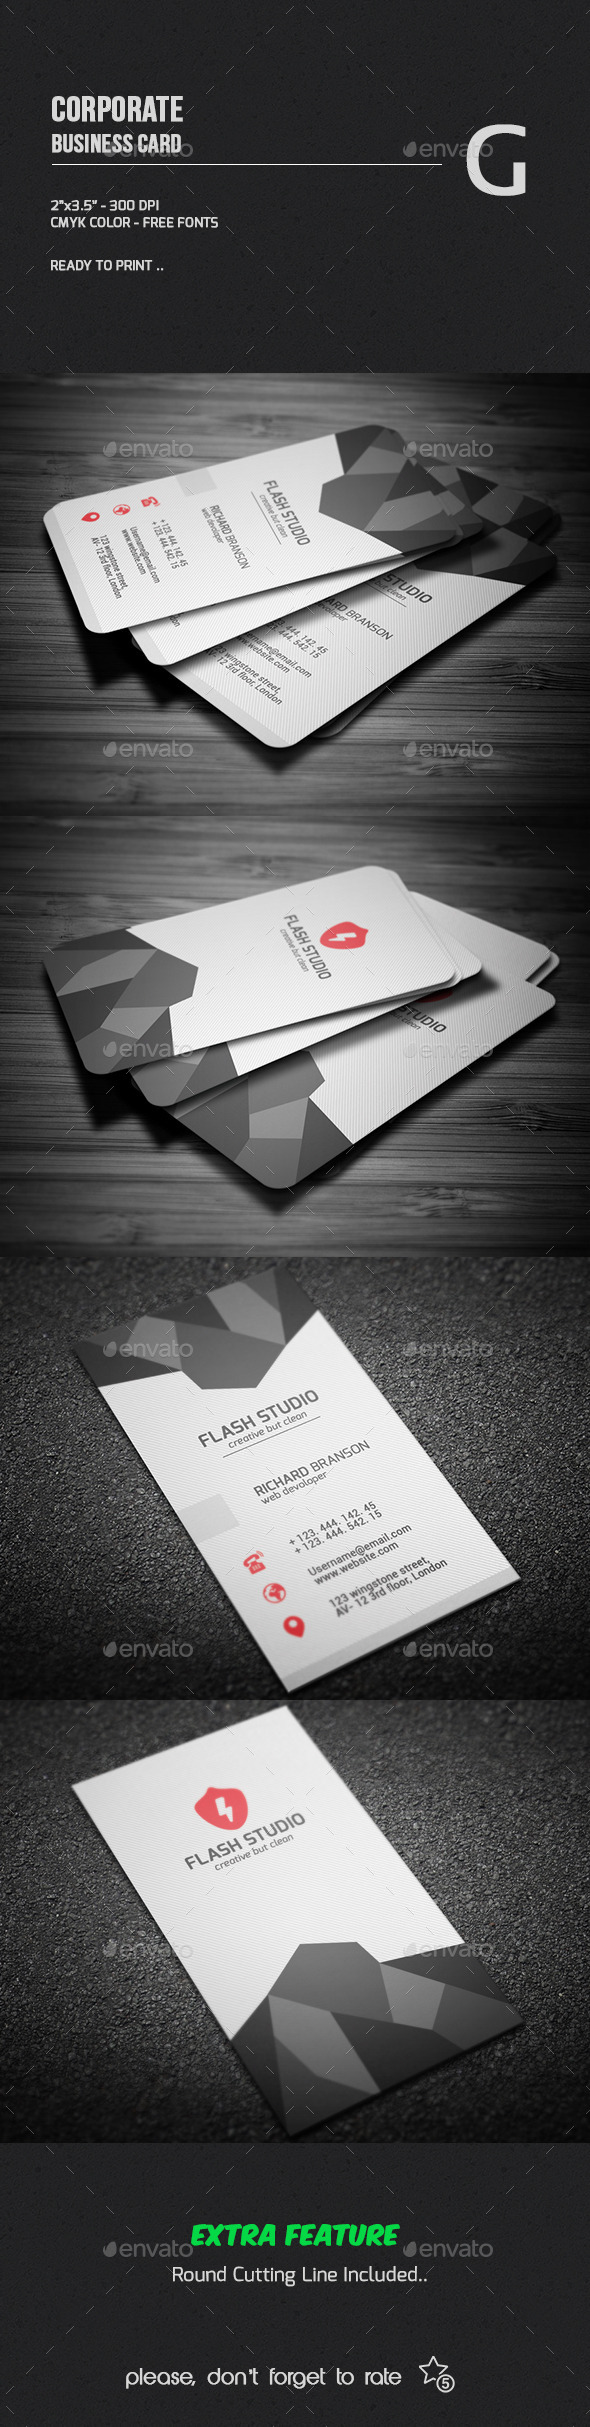 GraphicRiver Corporate Business Card 9961764